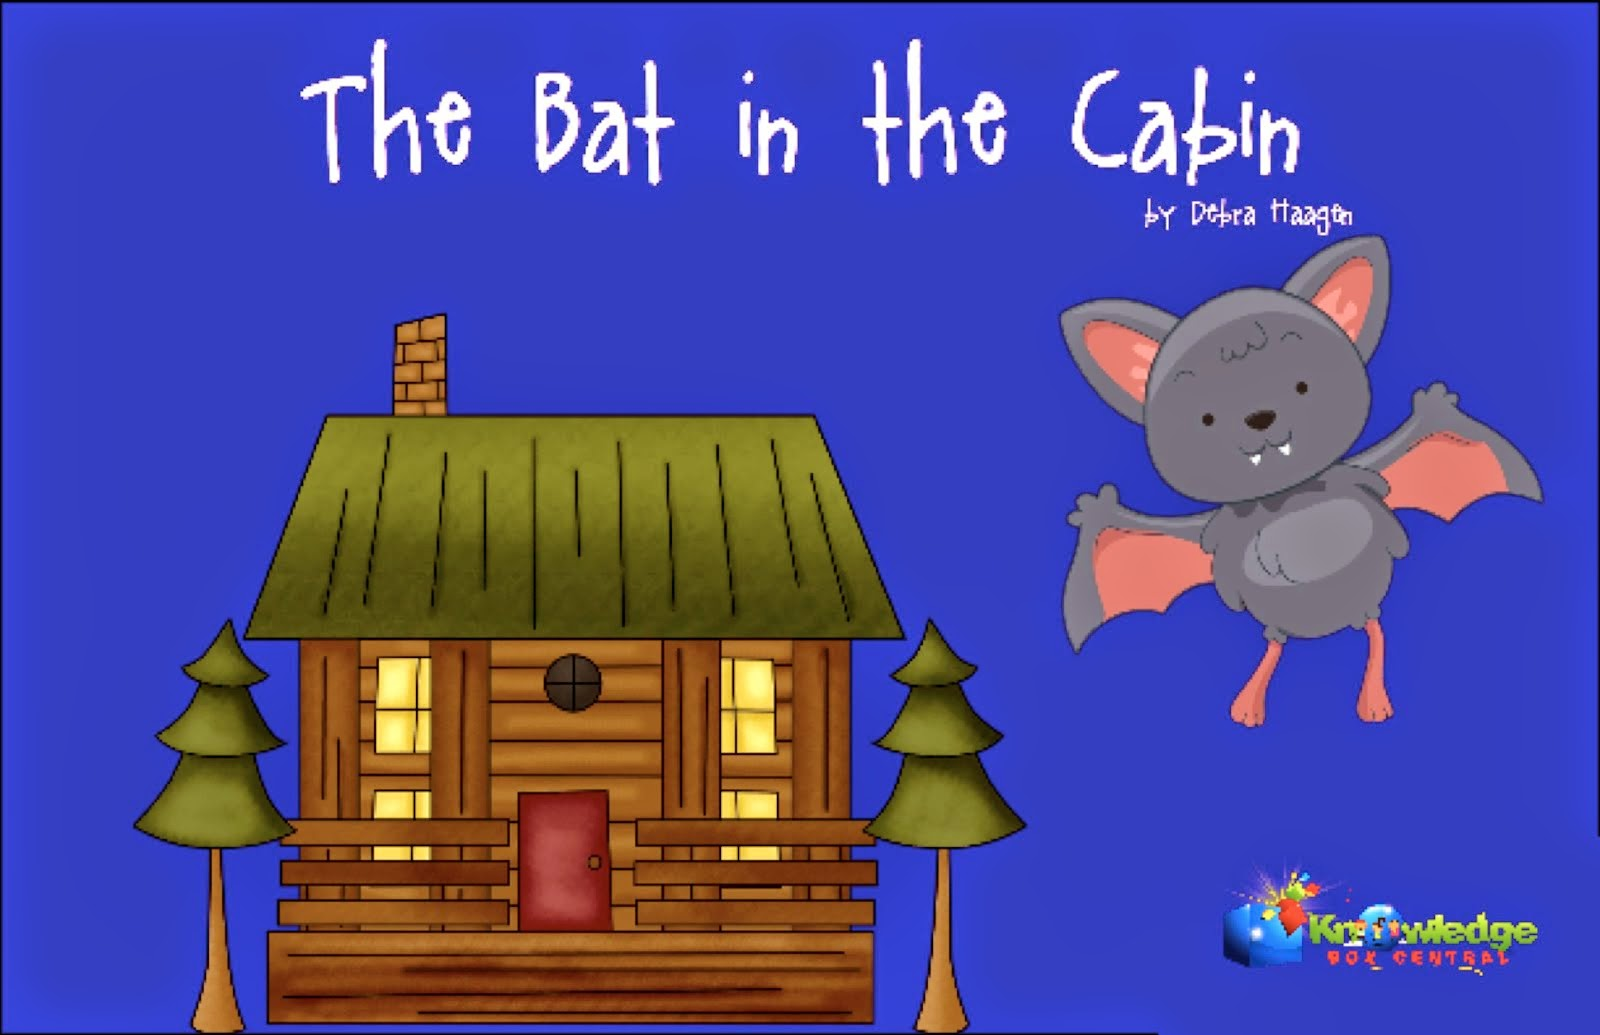 See my brand new children's book on Kindle!